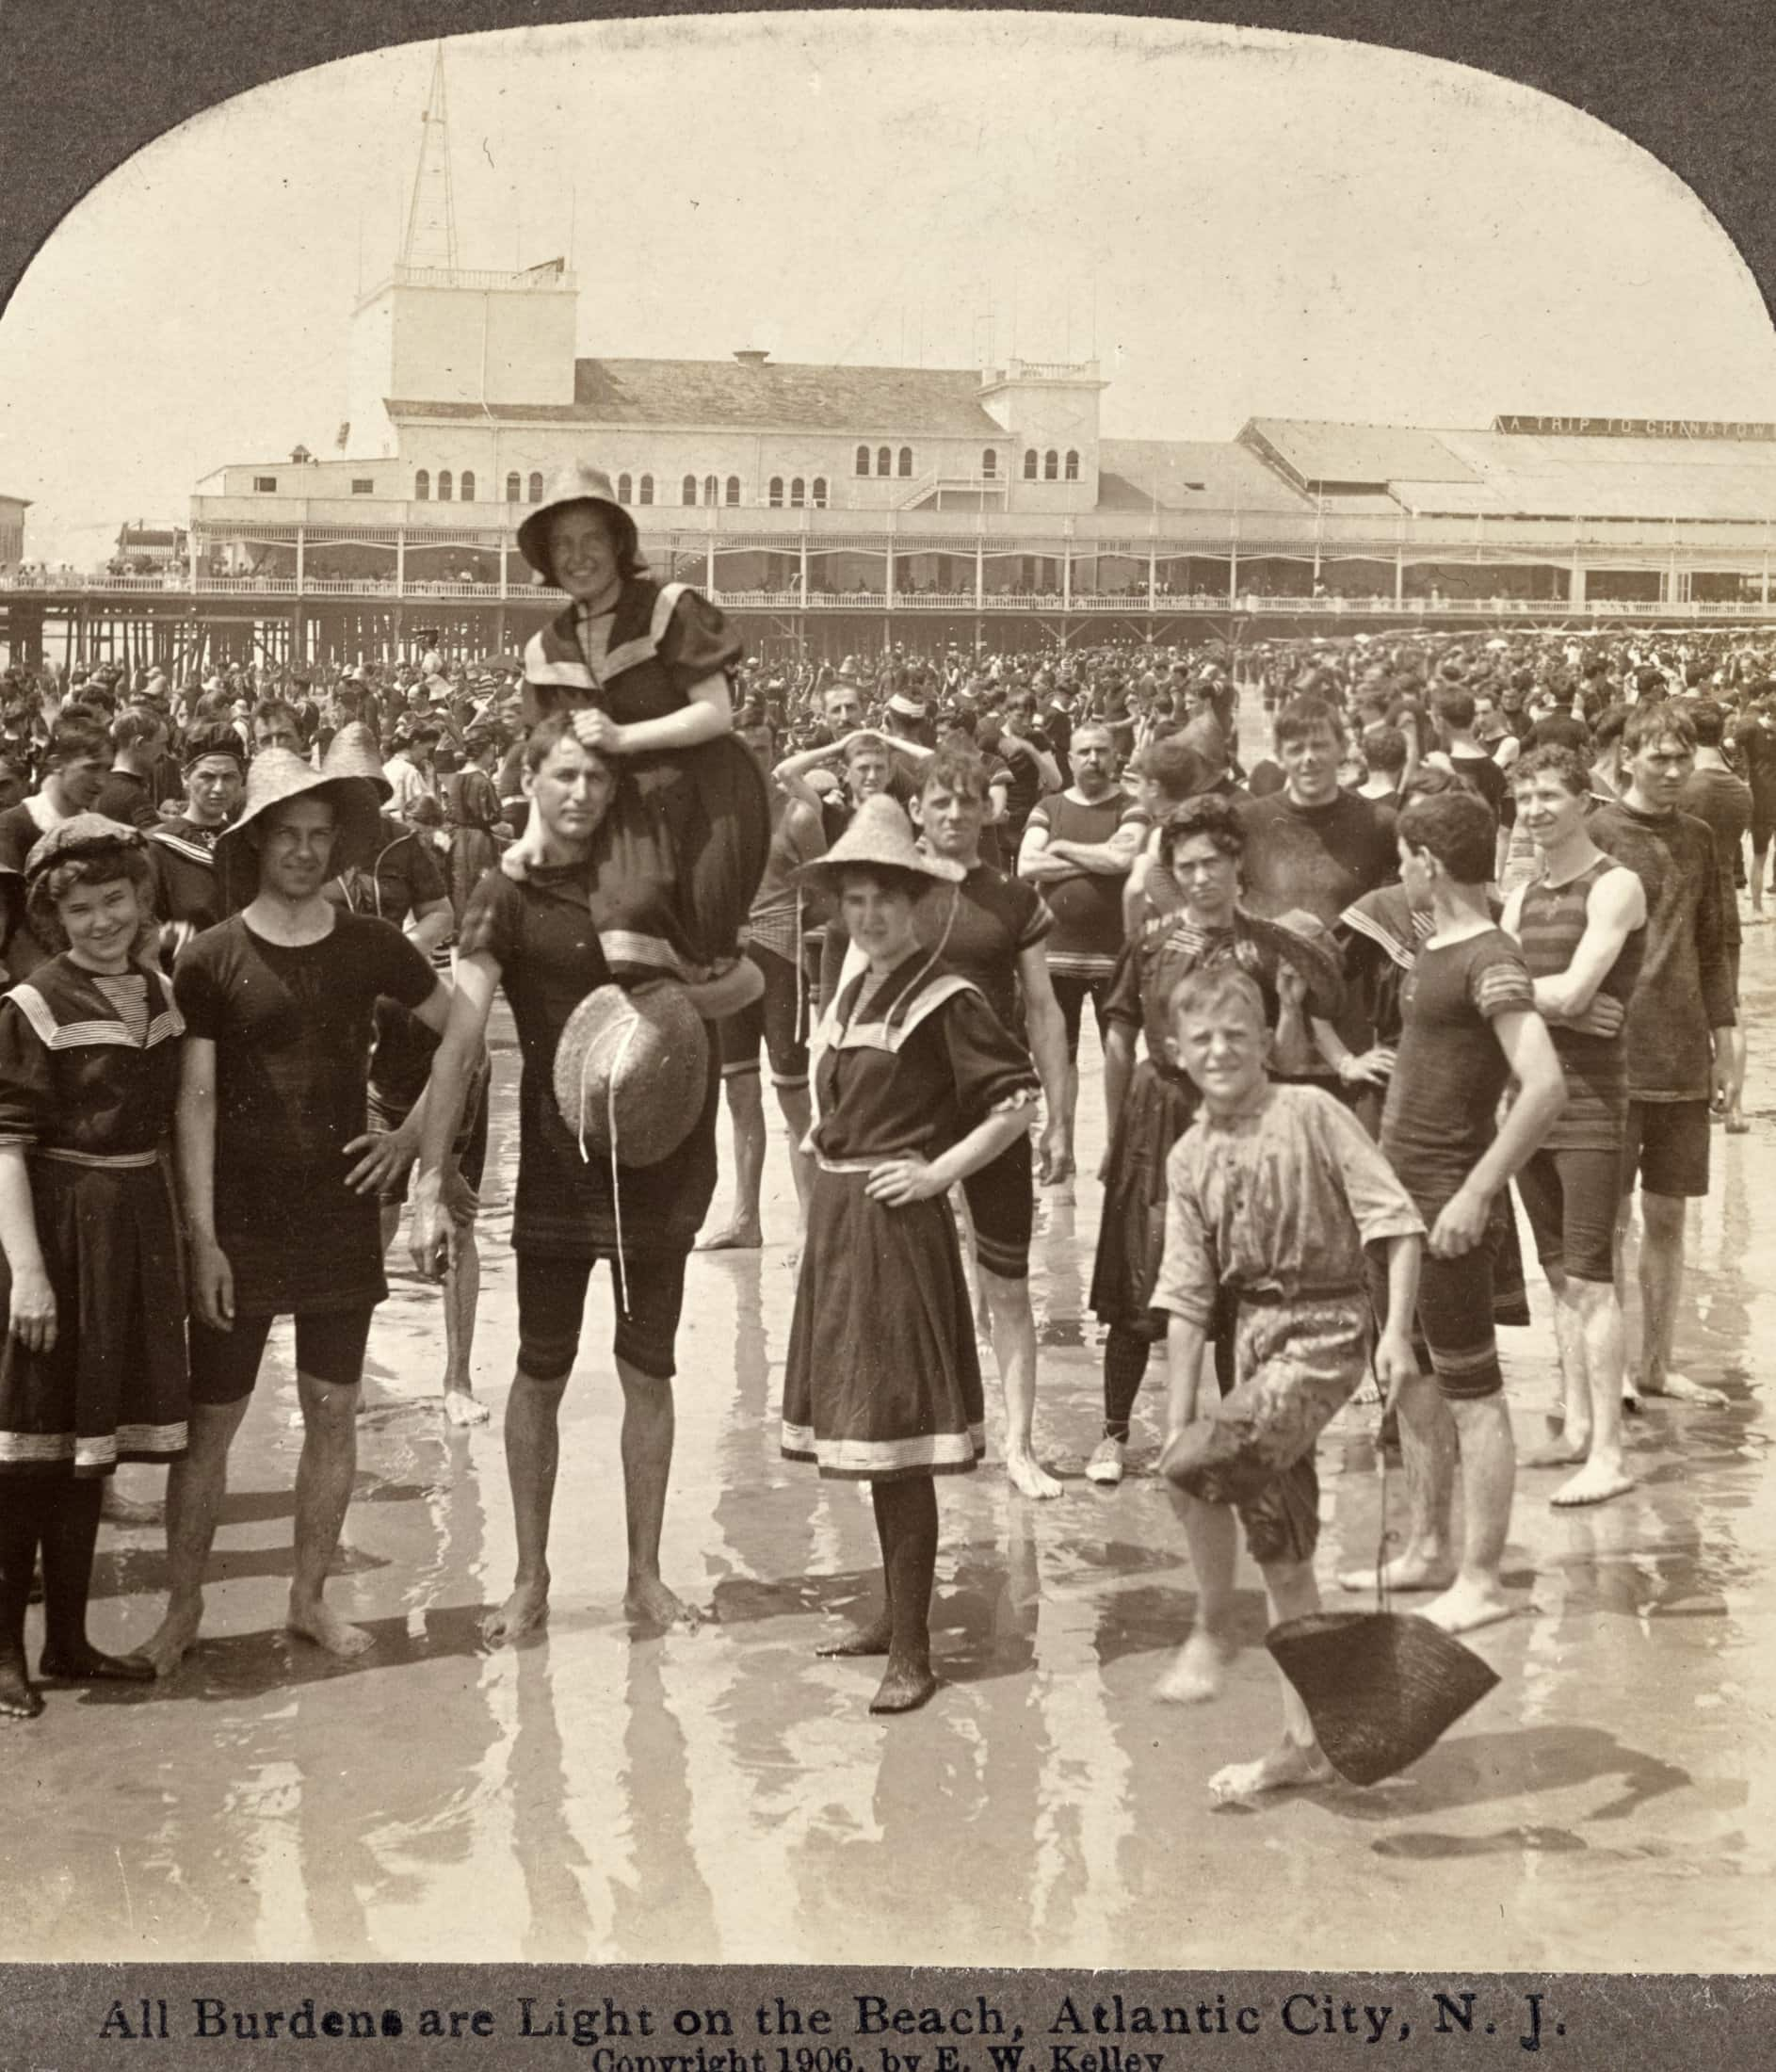 All burdens are light on the beach, Atlantic City, New Jersey (1906)